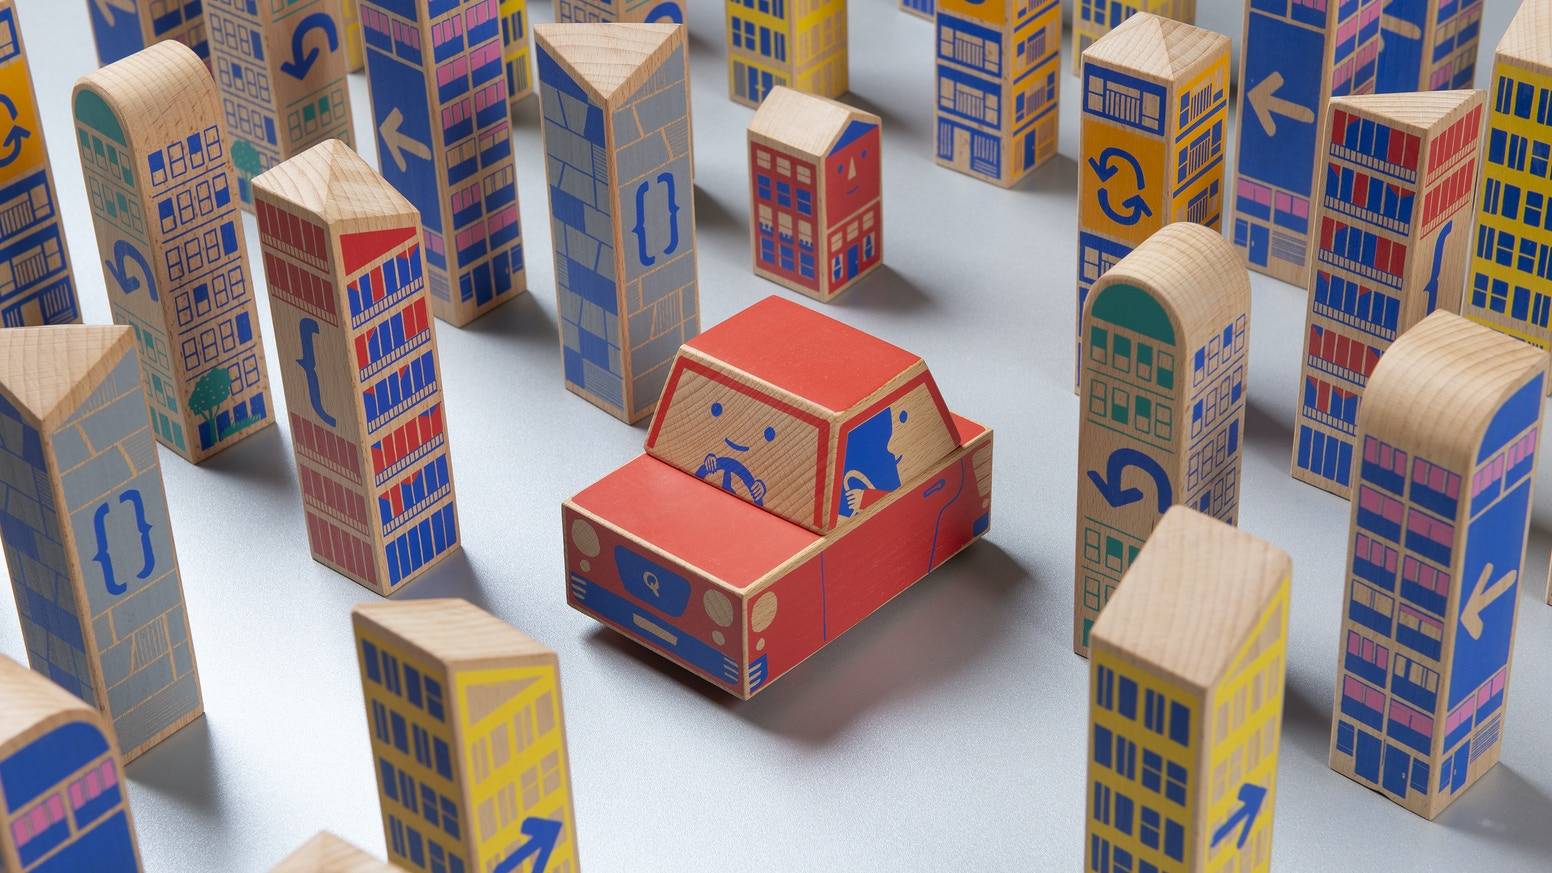 A Montessori inspired, screen-free, gender neutral wooden toy combined with patented RFID technology.